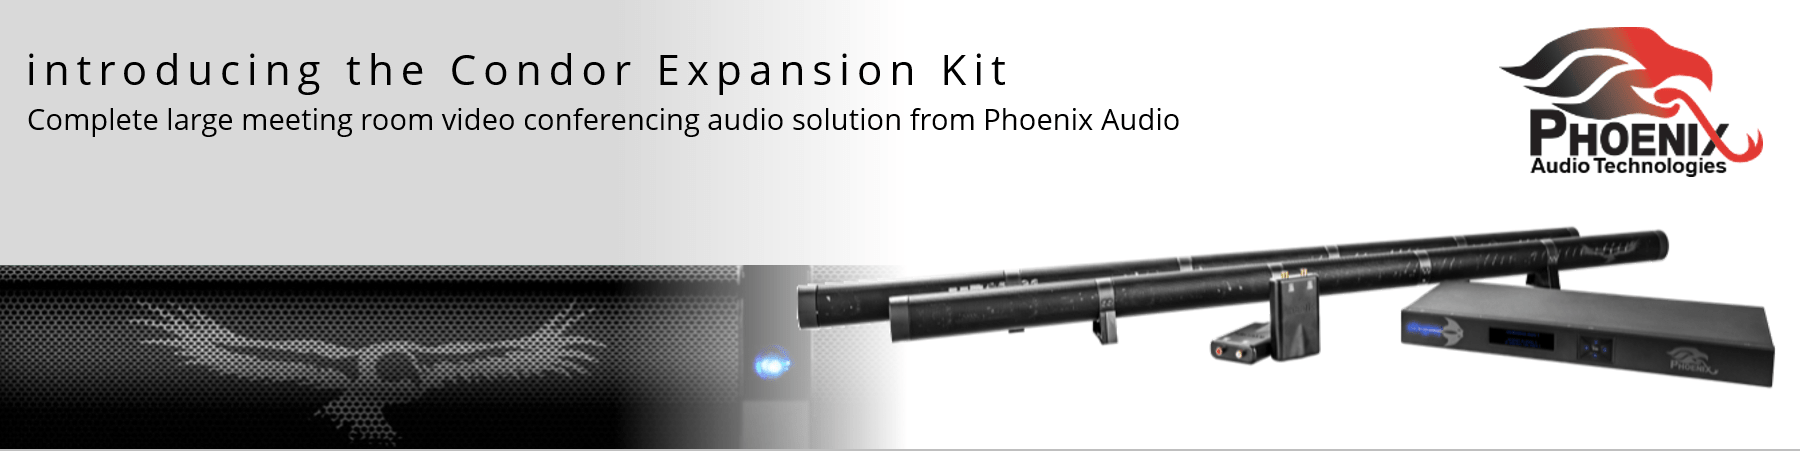 Video Conference Gear and Phoenix Audio Condor Expansion Kit